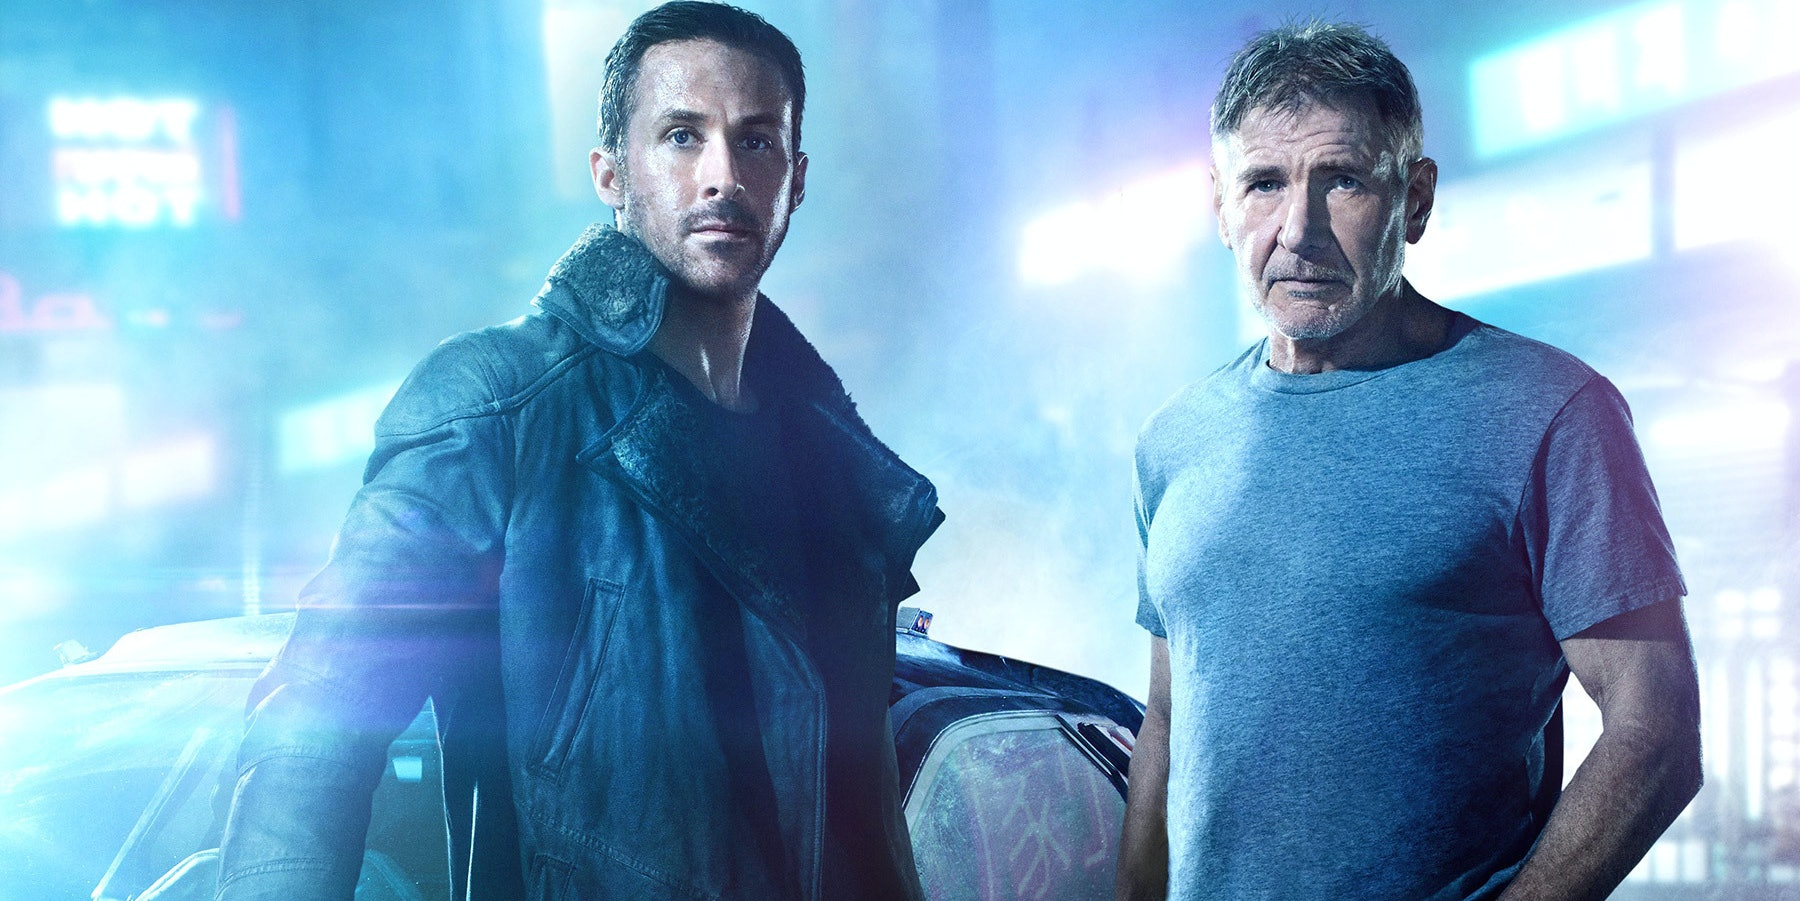 Sensible T-Shirts Dominate New 'Blade Runner 2049' Photos